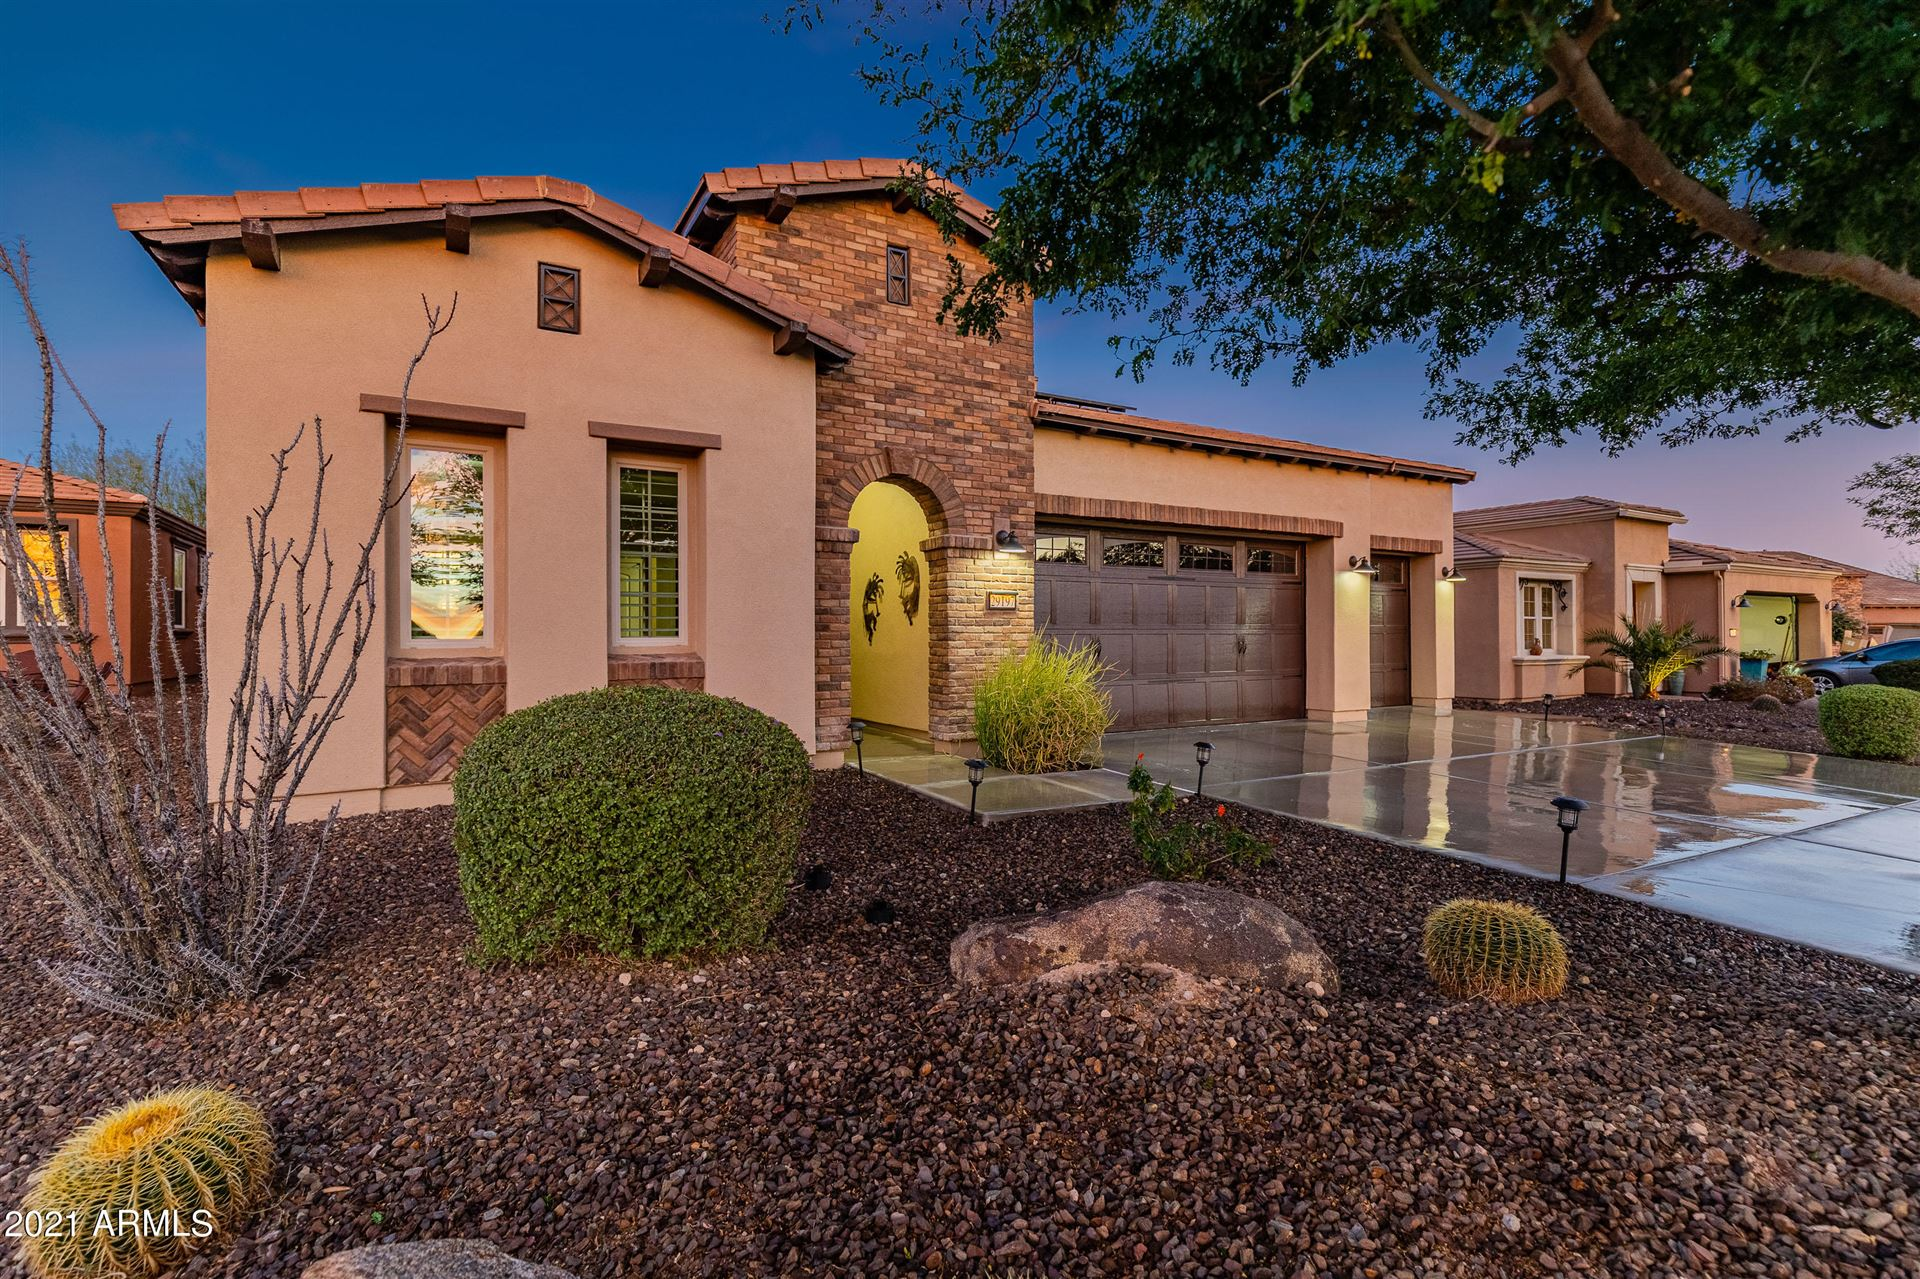 Photo of 29197 N 128TH Lane, Peoria, AZ 85383 (MLS # 6192352)